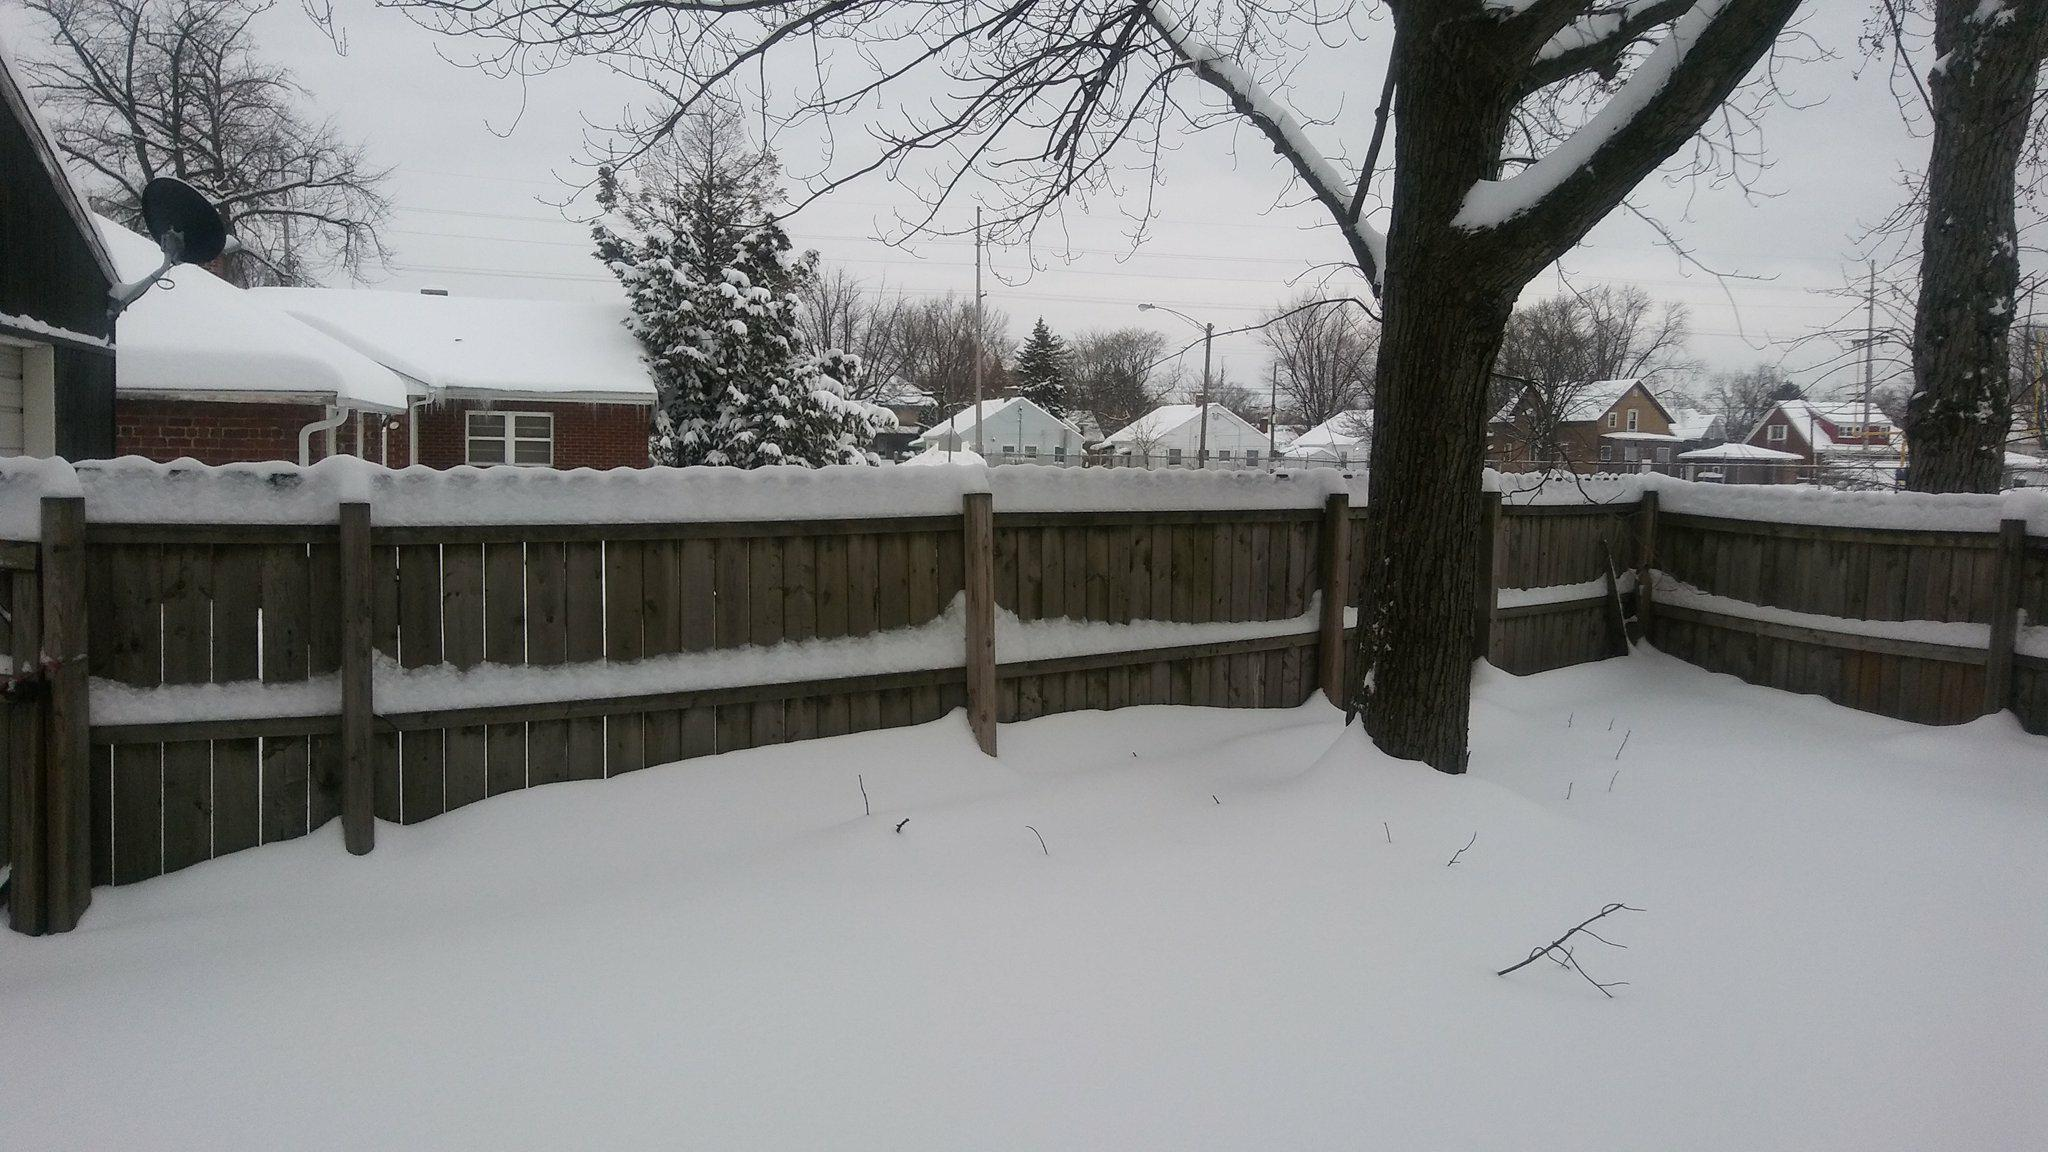 A Michigan City back yard is covered in snow reaching the middle of their fence throughout the yard.